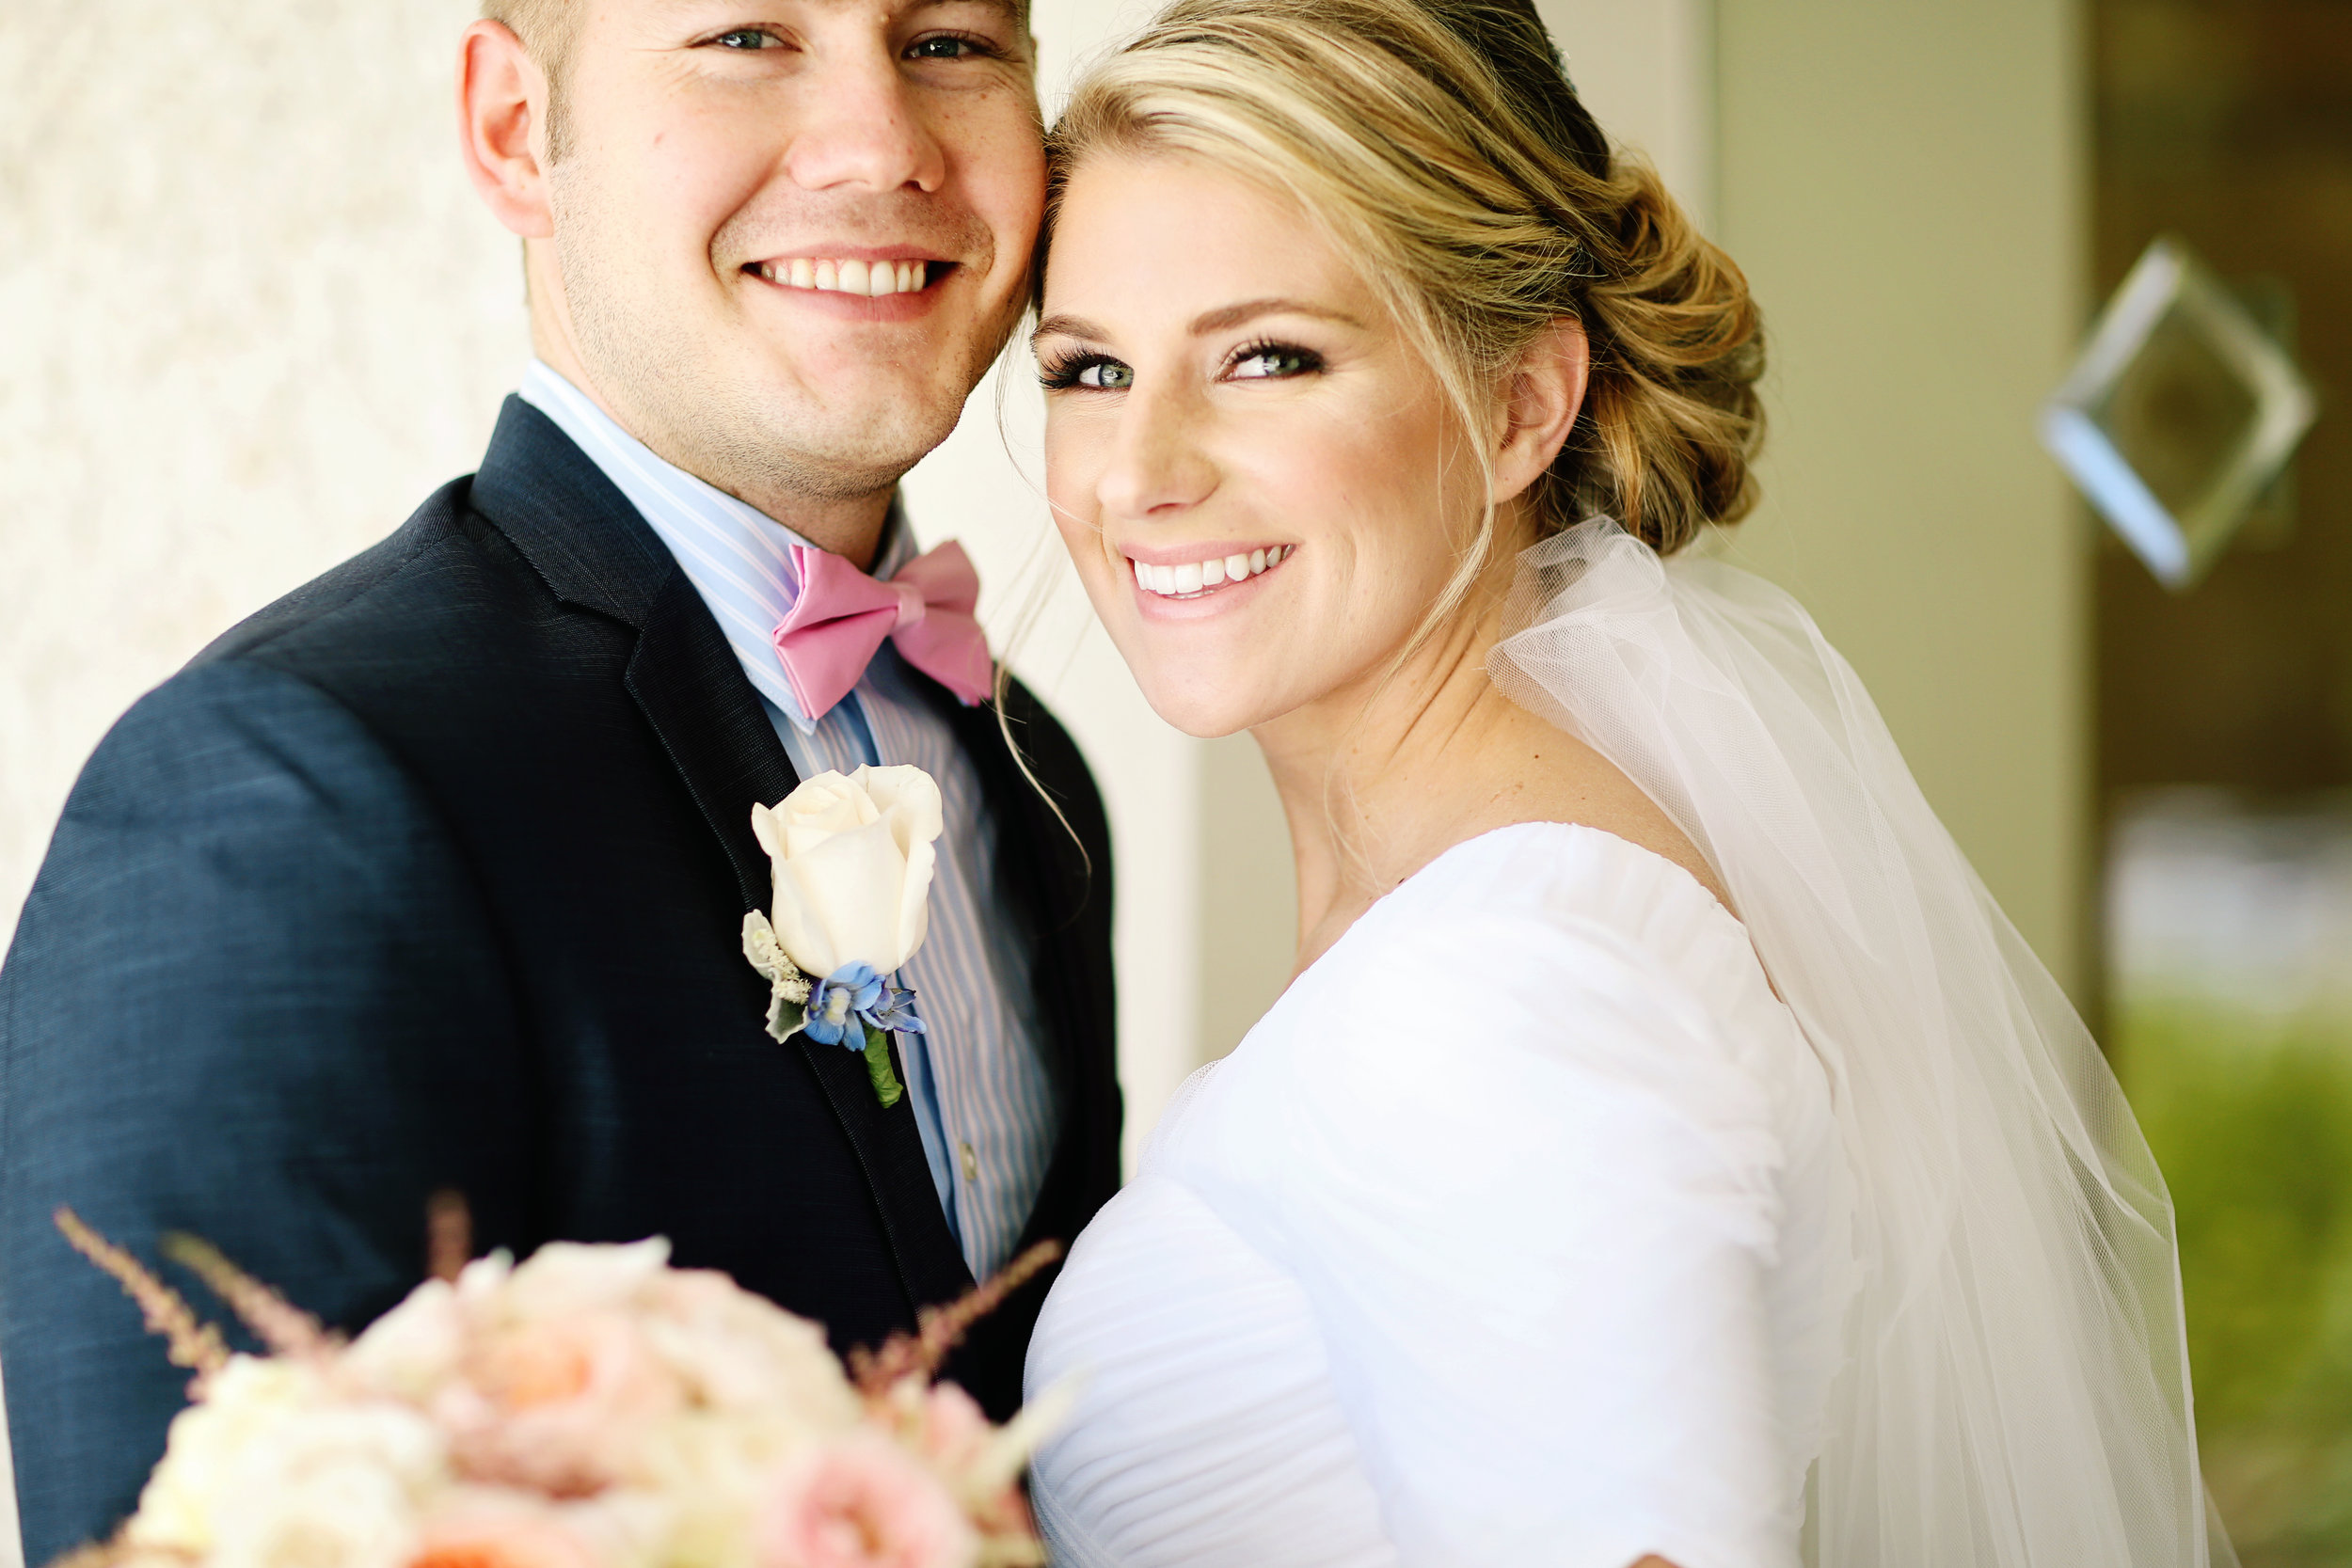 Groom wearing a pink bowtie with his young bride posing for a wedding portrait